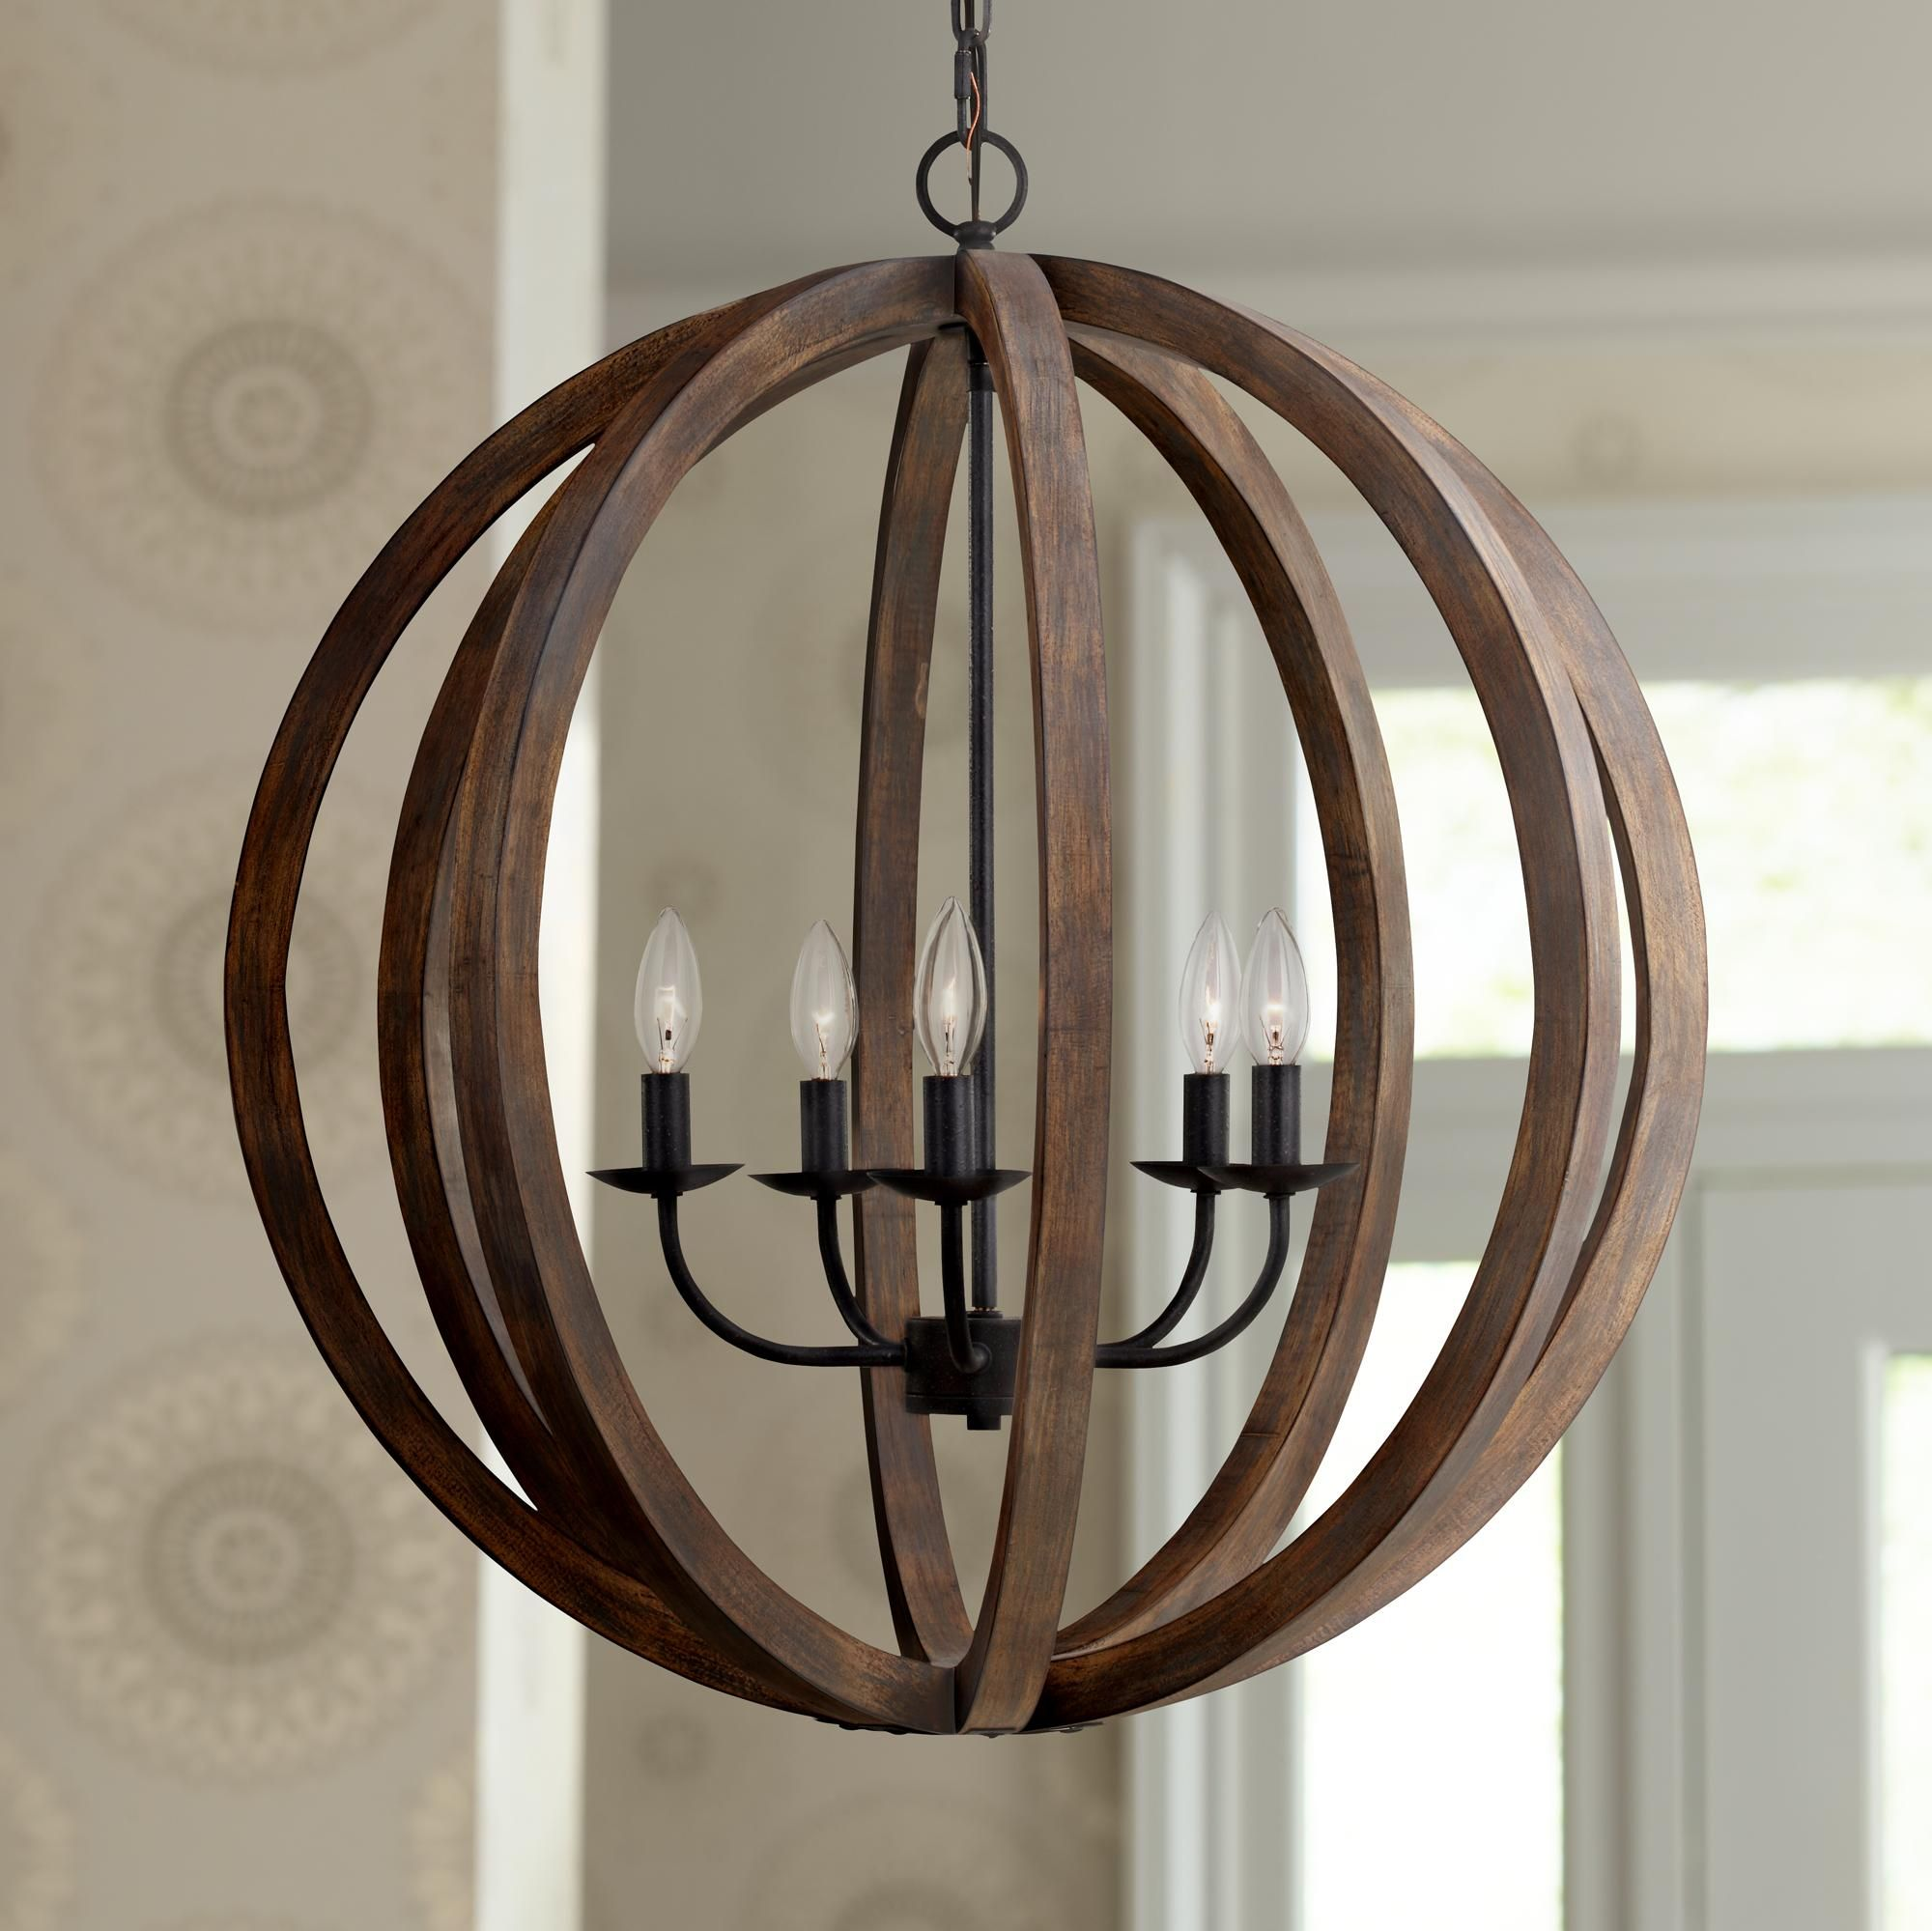 Feiss allier 26 wide weathered oak wood pendant light pendant feiss allier 26 wide weathered oak wood pendant light arubaitofo Images